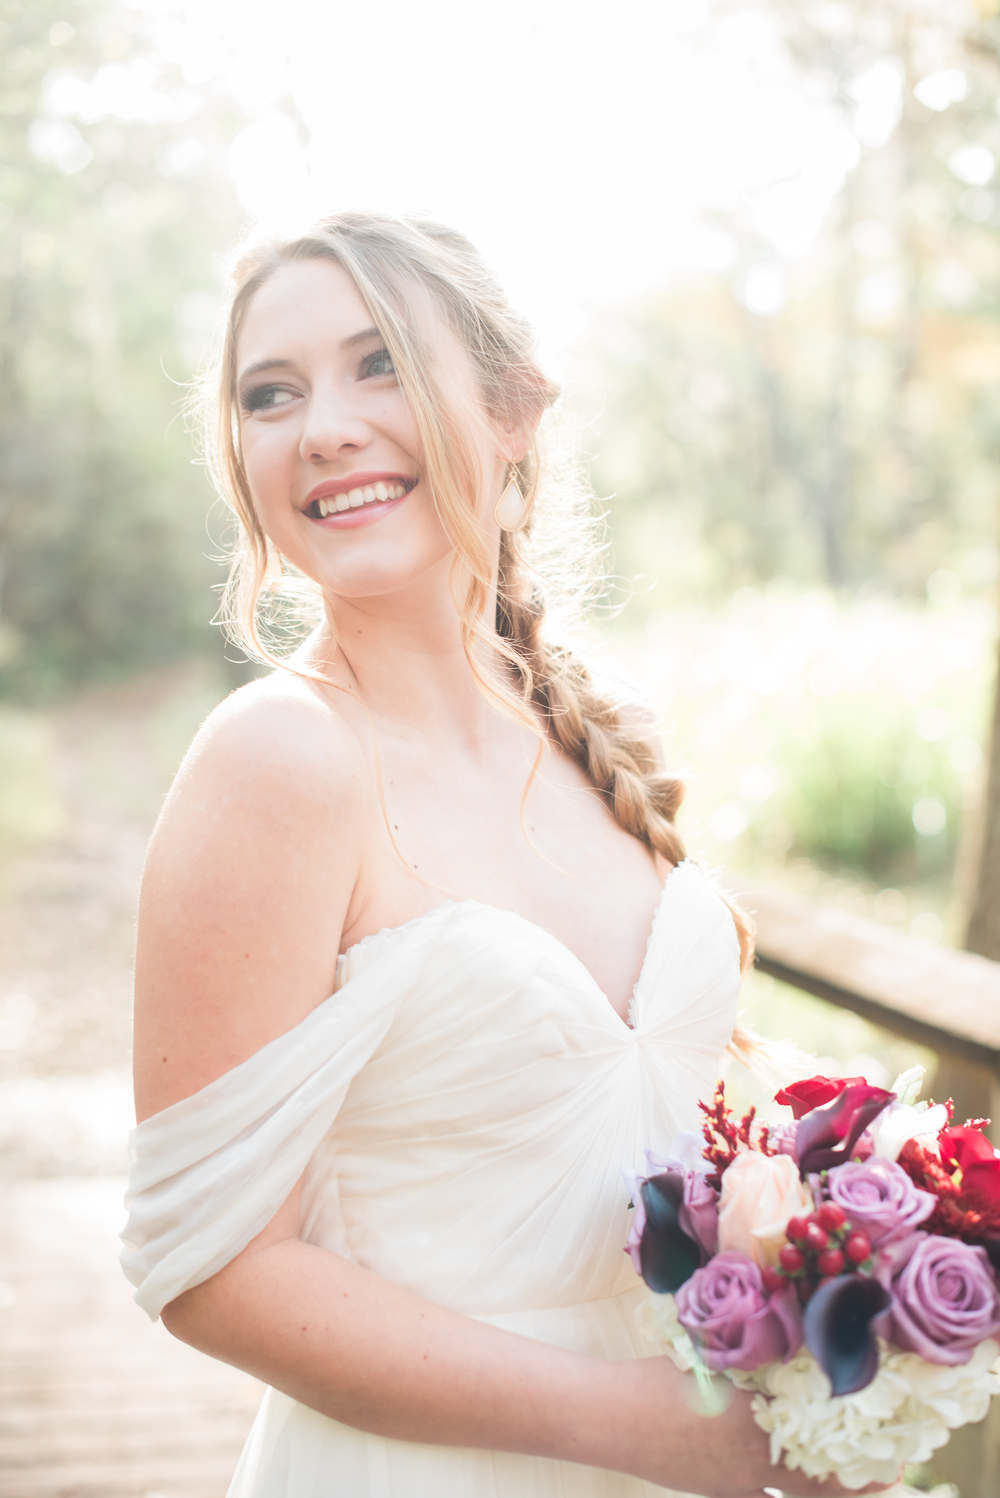 5-D-Photography-lafayette-sarah-seven-off-the-shoulder-wedding-dress-Gardenias-hilton-head- Ogeechee-Canal-Trail-ivory-and-beau-bridal-boutique-savannah-wedding-dresses-savannah-bridal-boutique-savannah-weddings-hilton-head-bridal-9.jpg